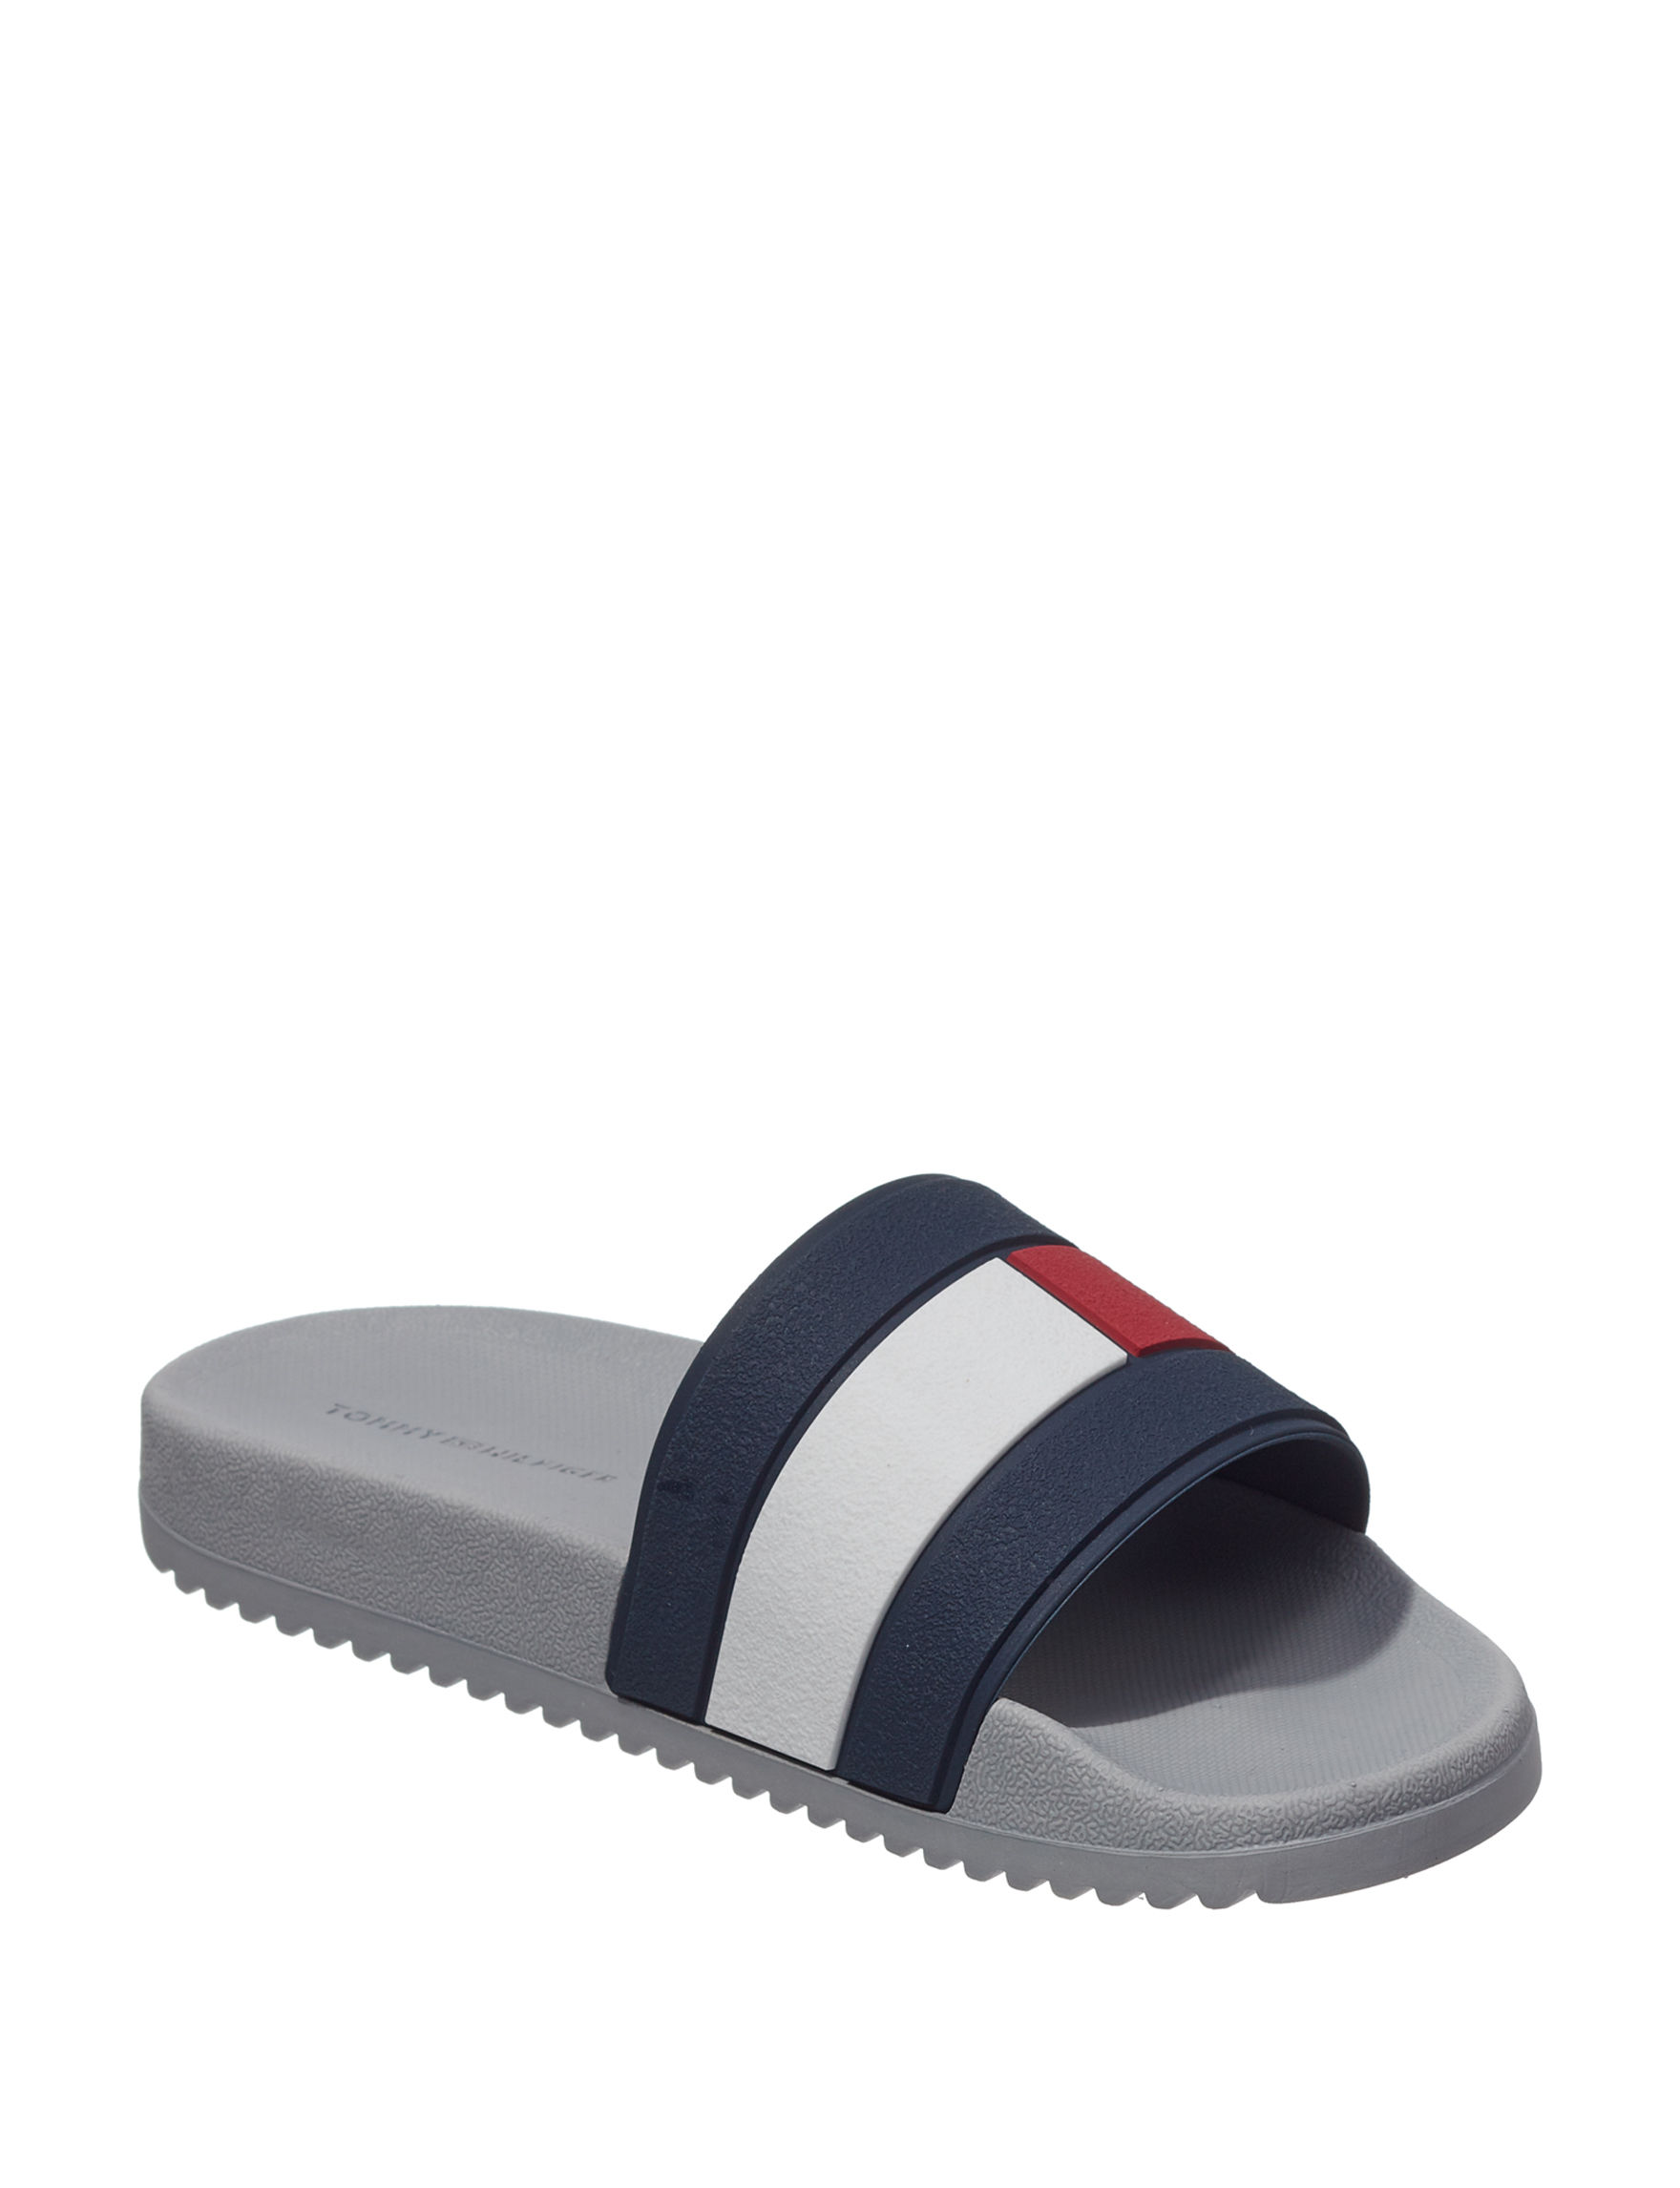 Tommy Hilfiger Charcoal Slide Sandals